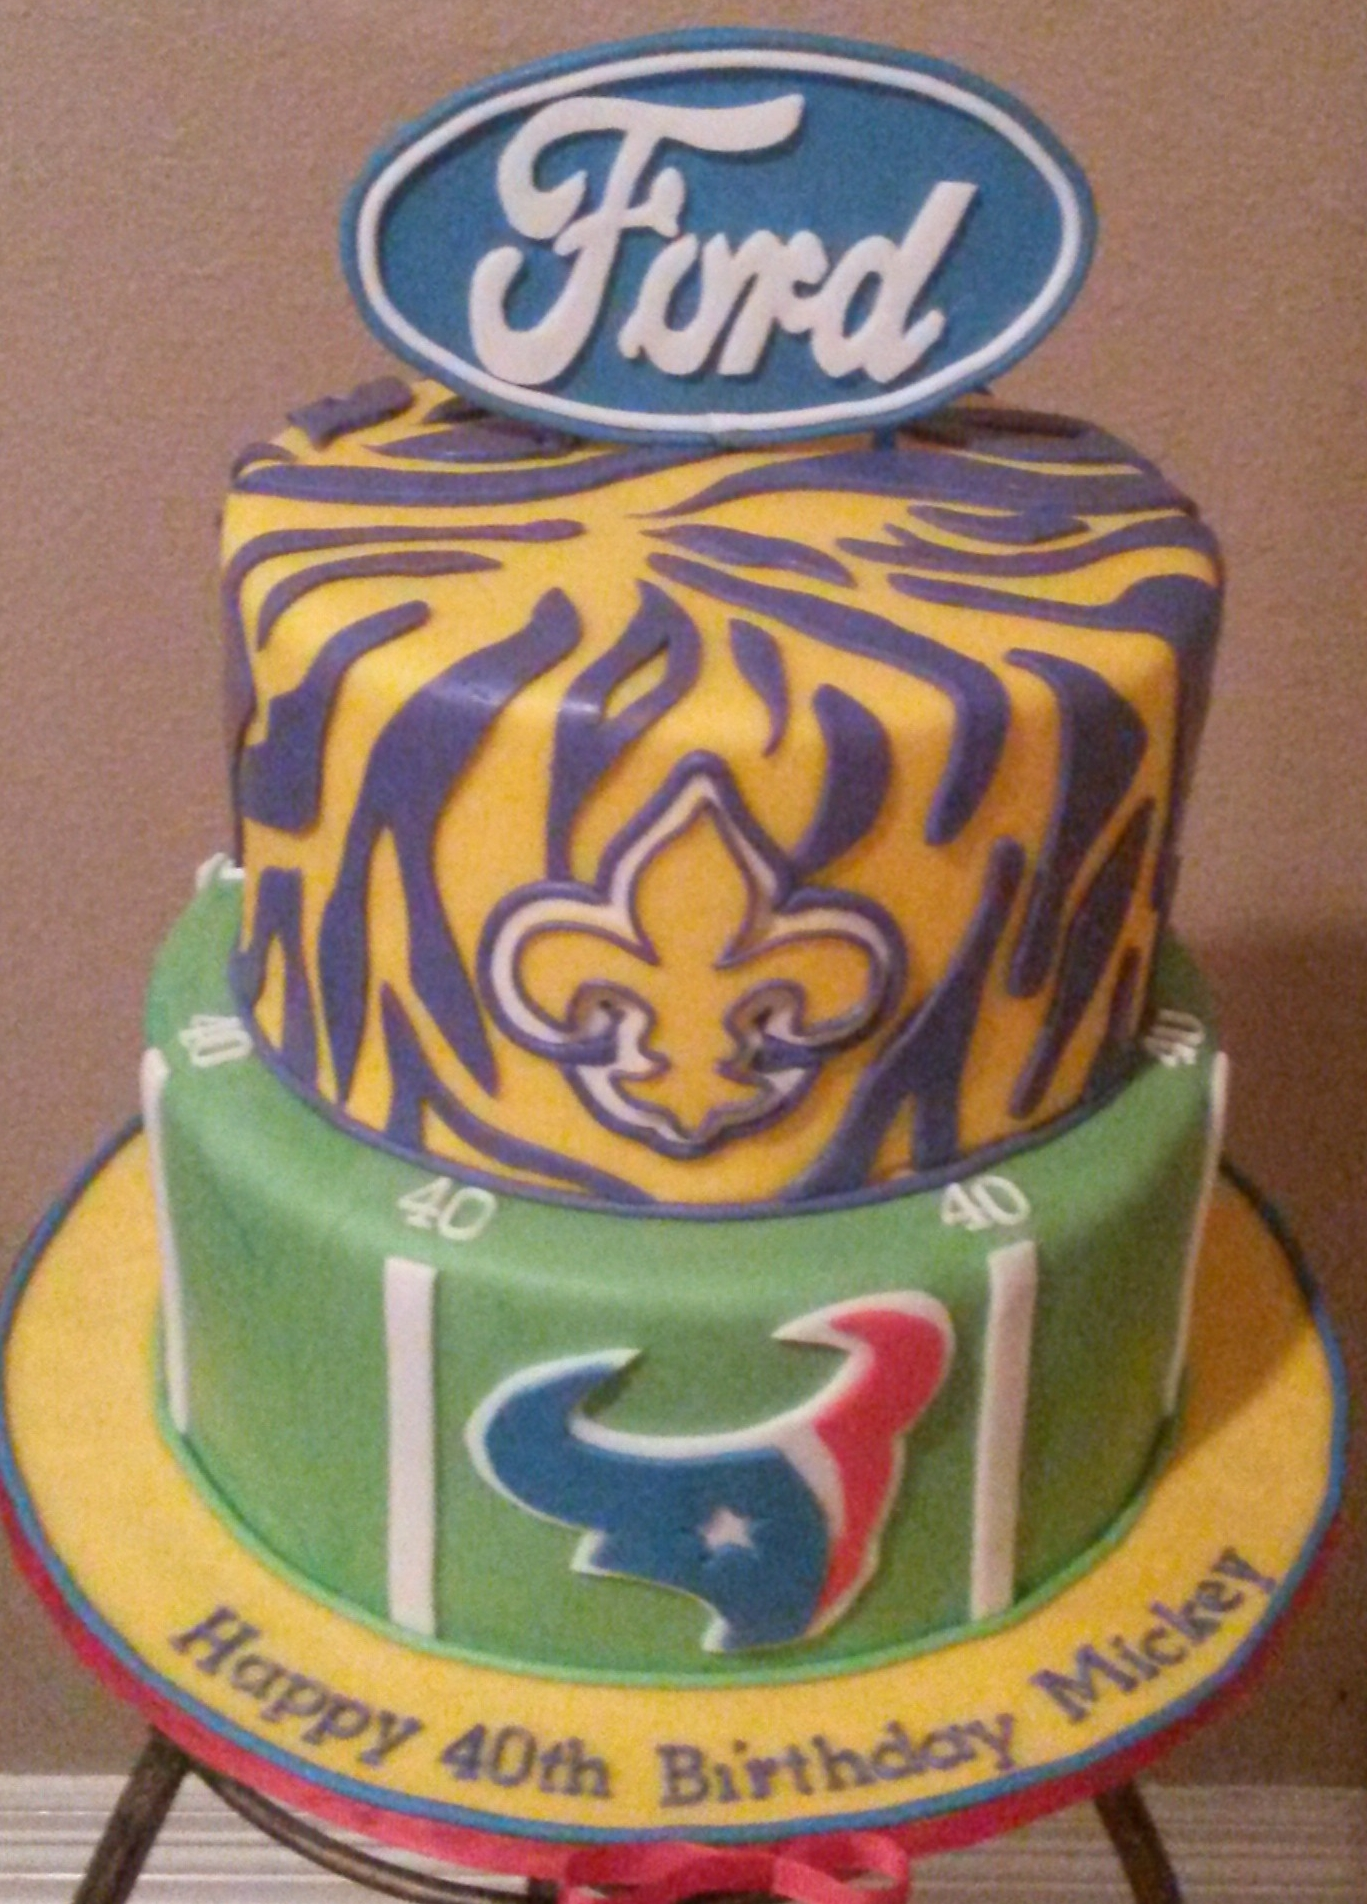 Texans, LSU, Ford and 40